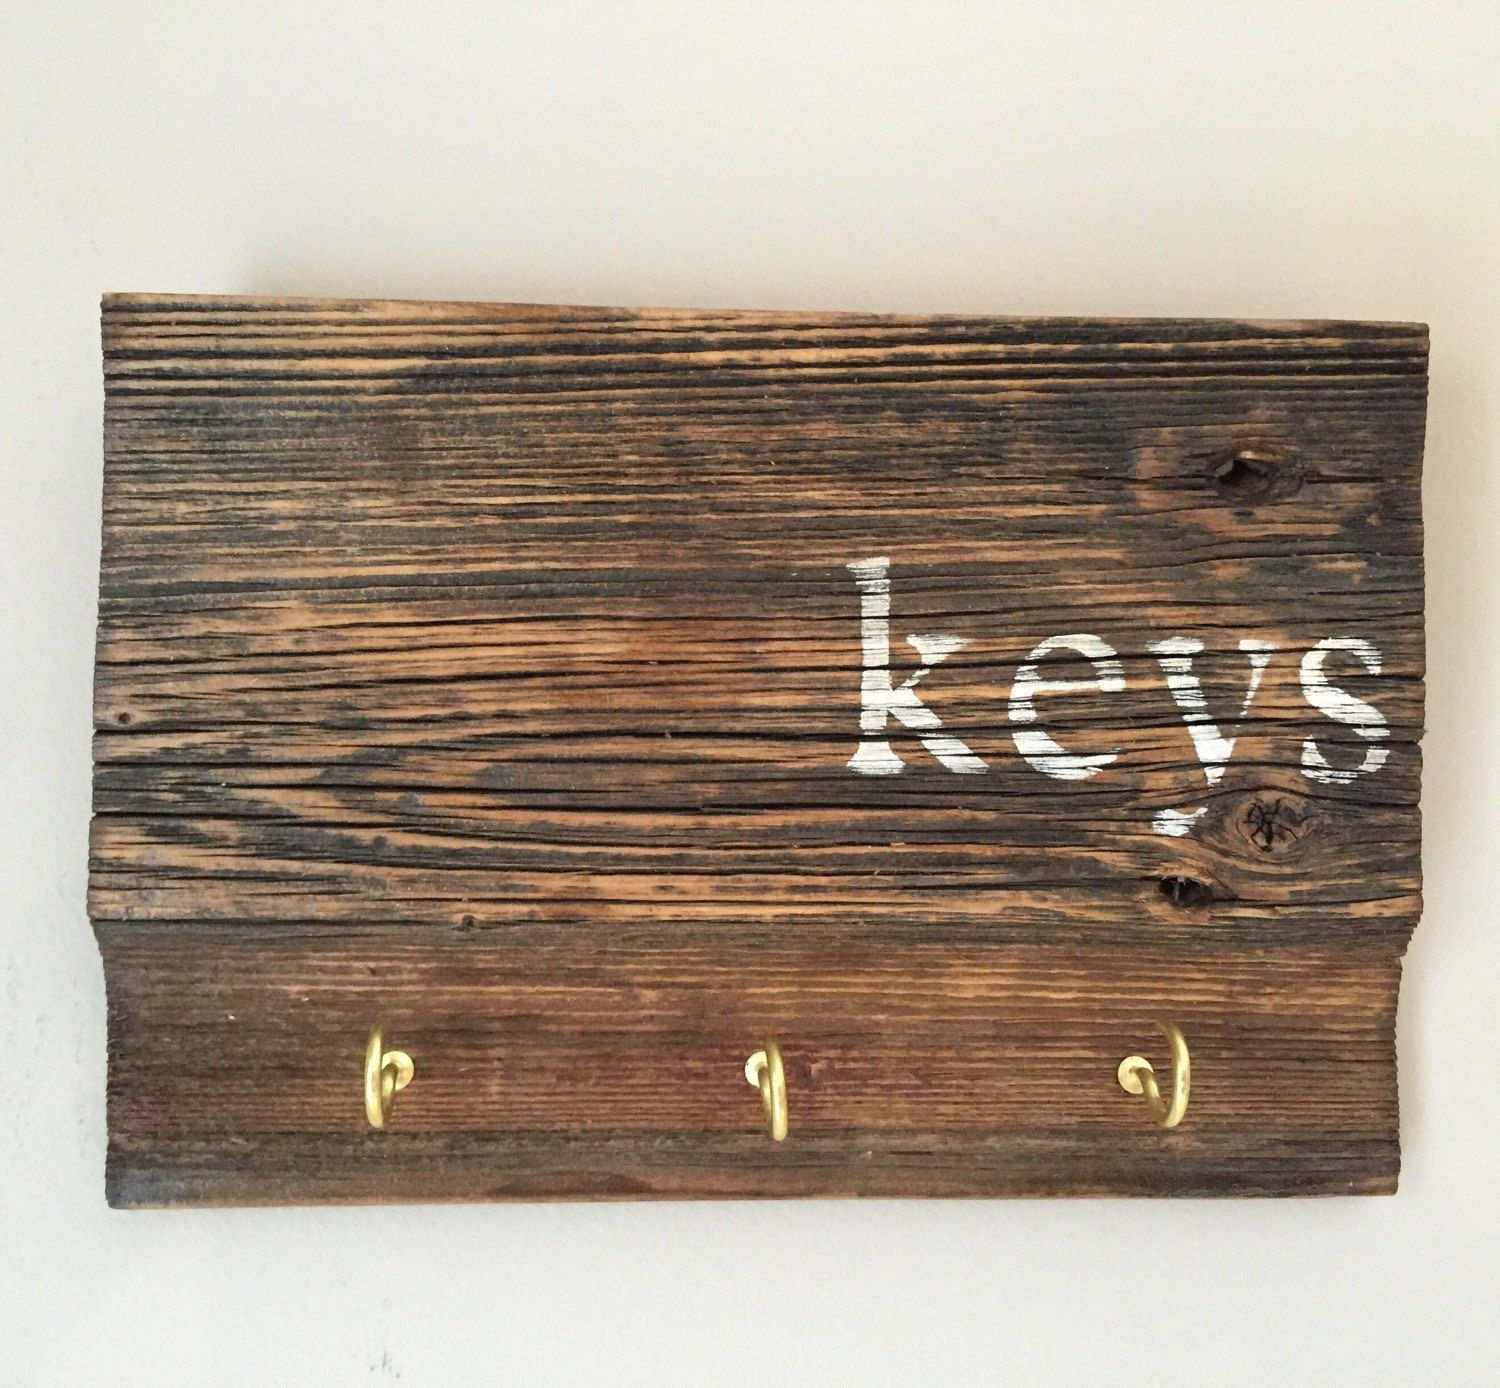 Wood Key Holder For Wall Key Holder Rustic Wood Sign Key Holder Key Holder For